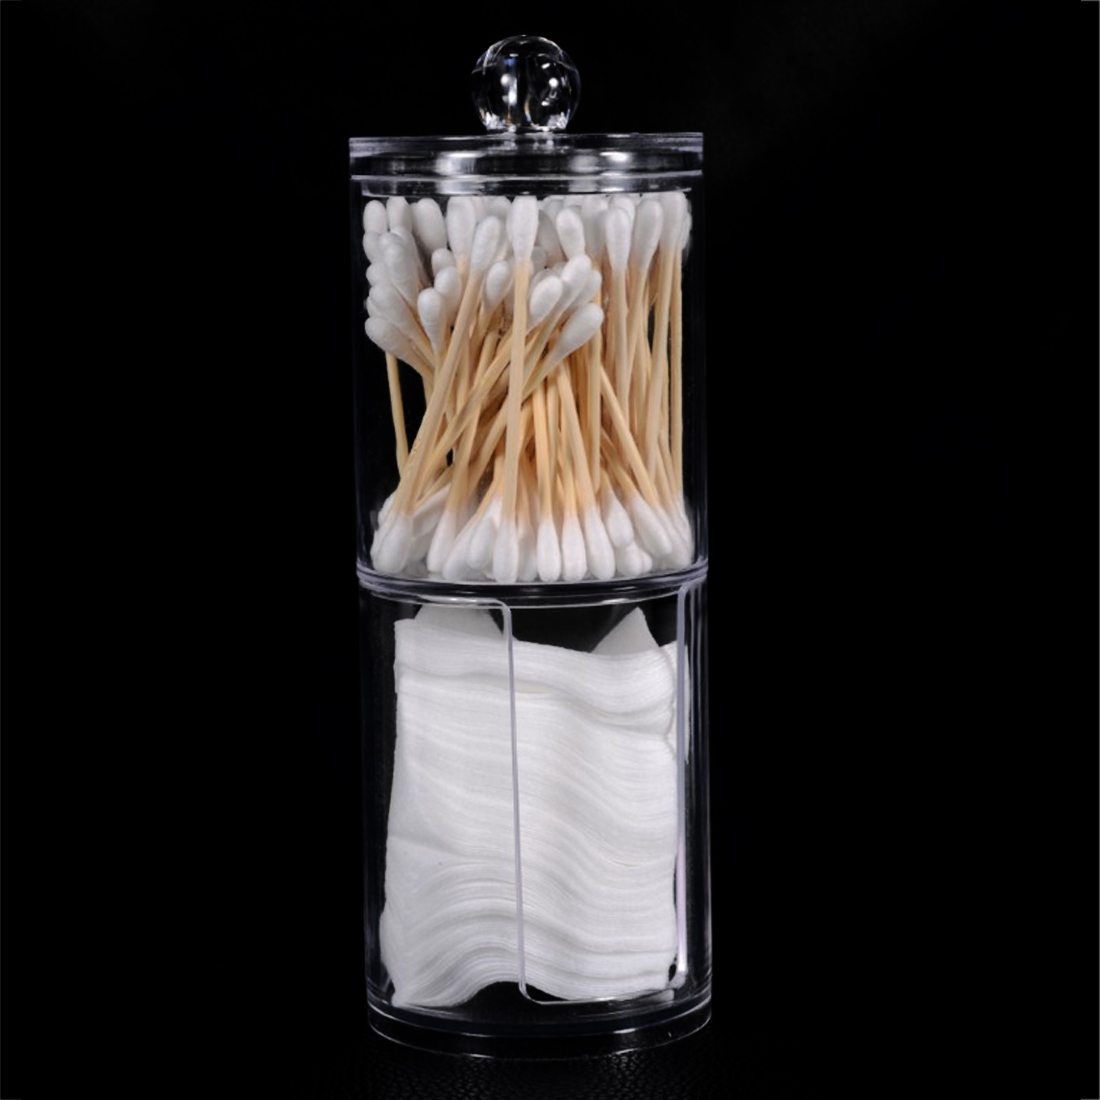 2 Layers Trabsperate Clear Acrylic Cotton Swab Organizer Box Protable Cosmetics Round Container Makeup Pad Storage Case